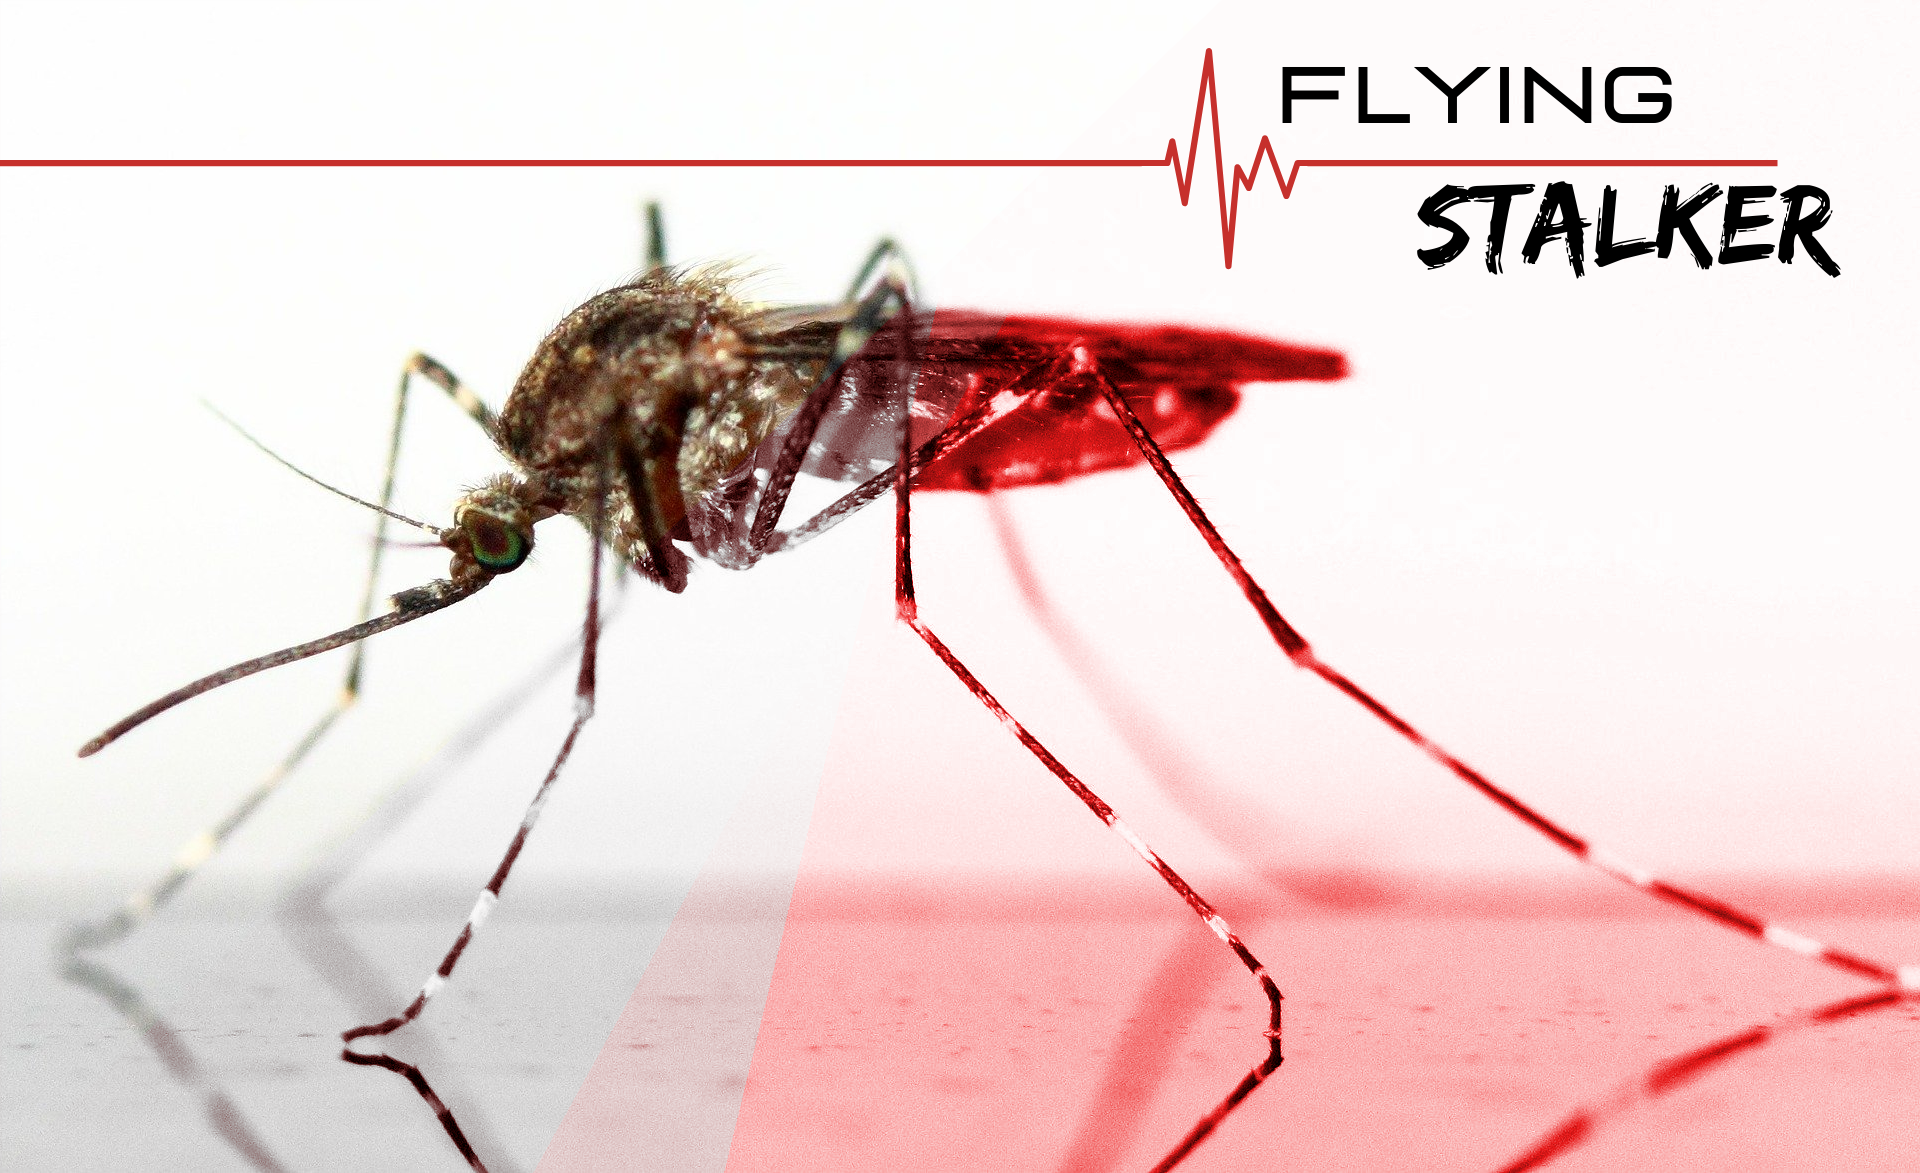 Flying Stalker, Drabble, Humour, MindFrameShift, Tanzelle Oberholster, Mosquito, Duotone, Graphic Design, Typography